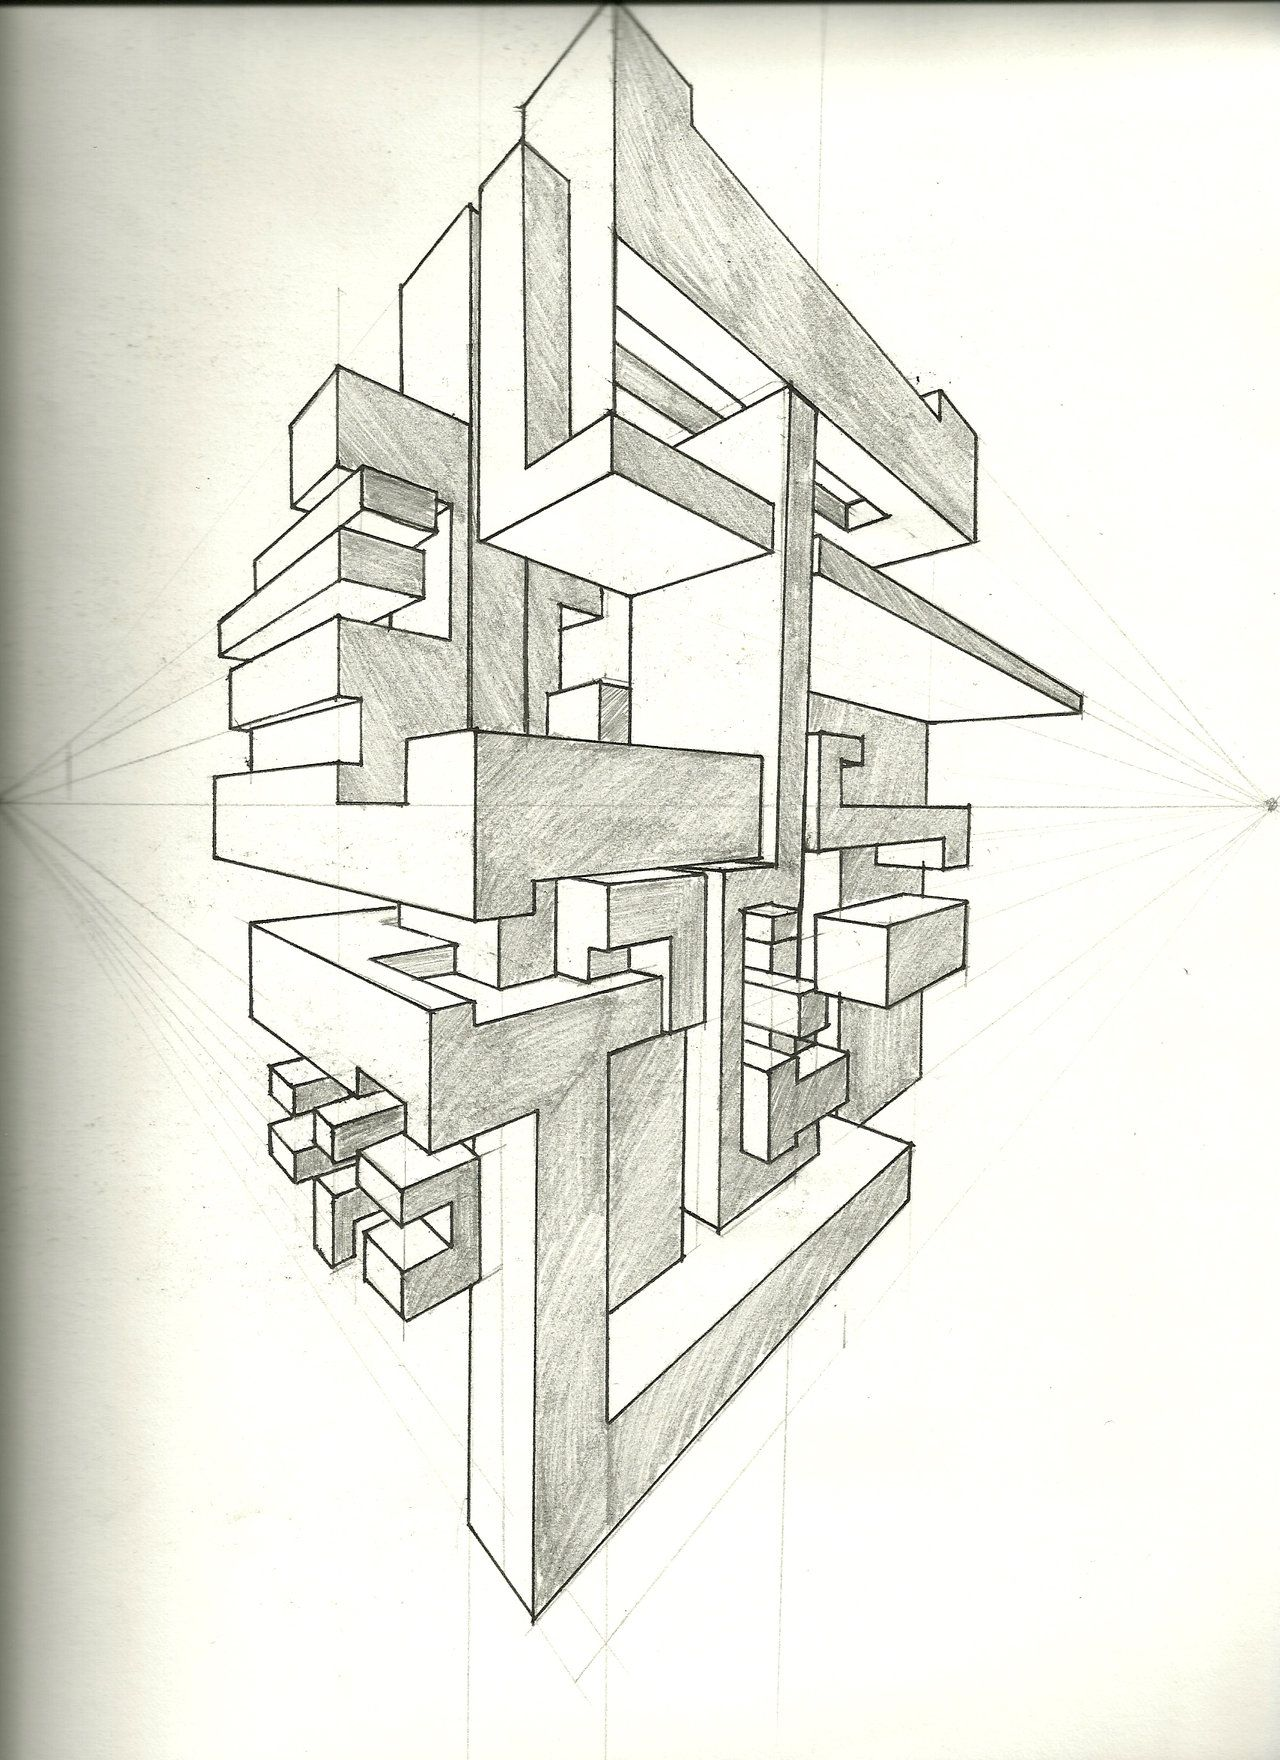 Two Point Perspective Exercise By Tower015 On Deviantart Perspective Art Perspective Drawing 2 Point Perspective Drawing